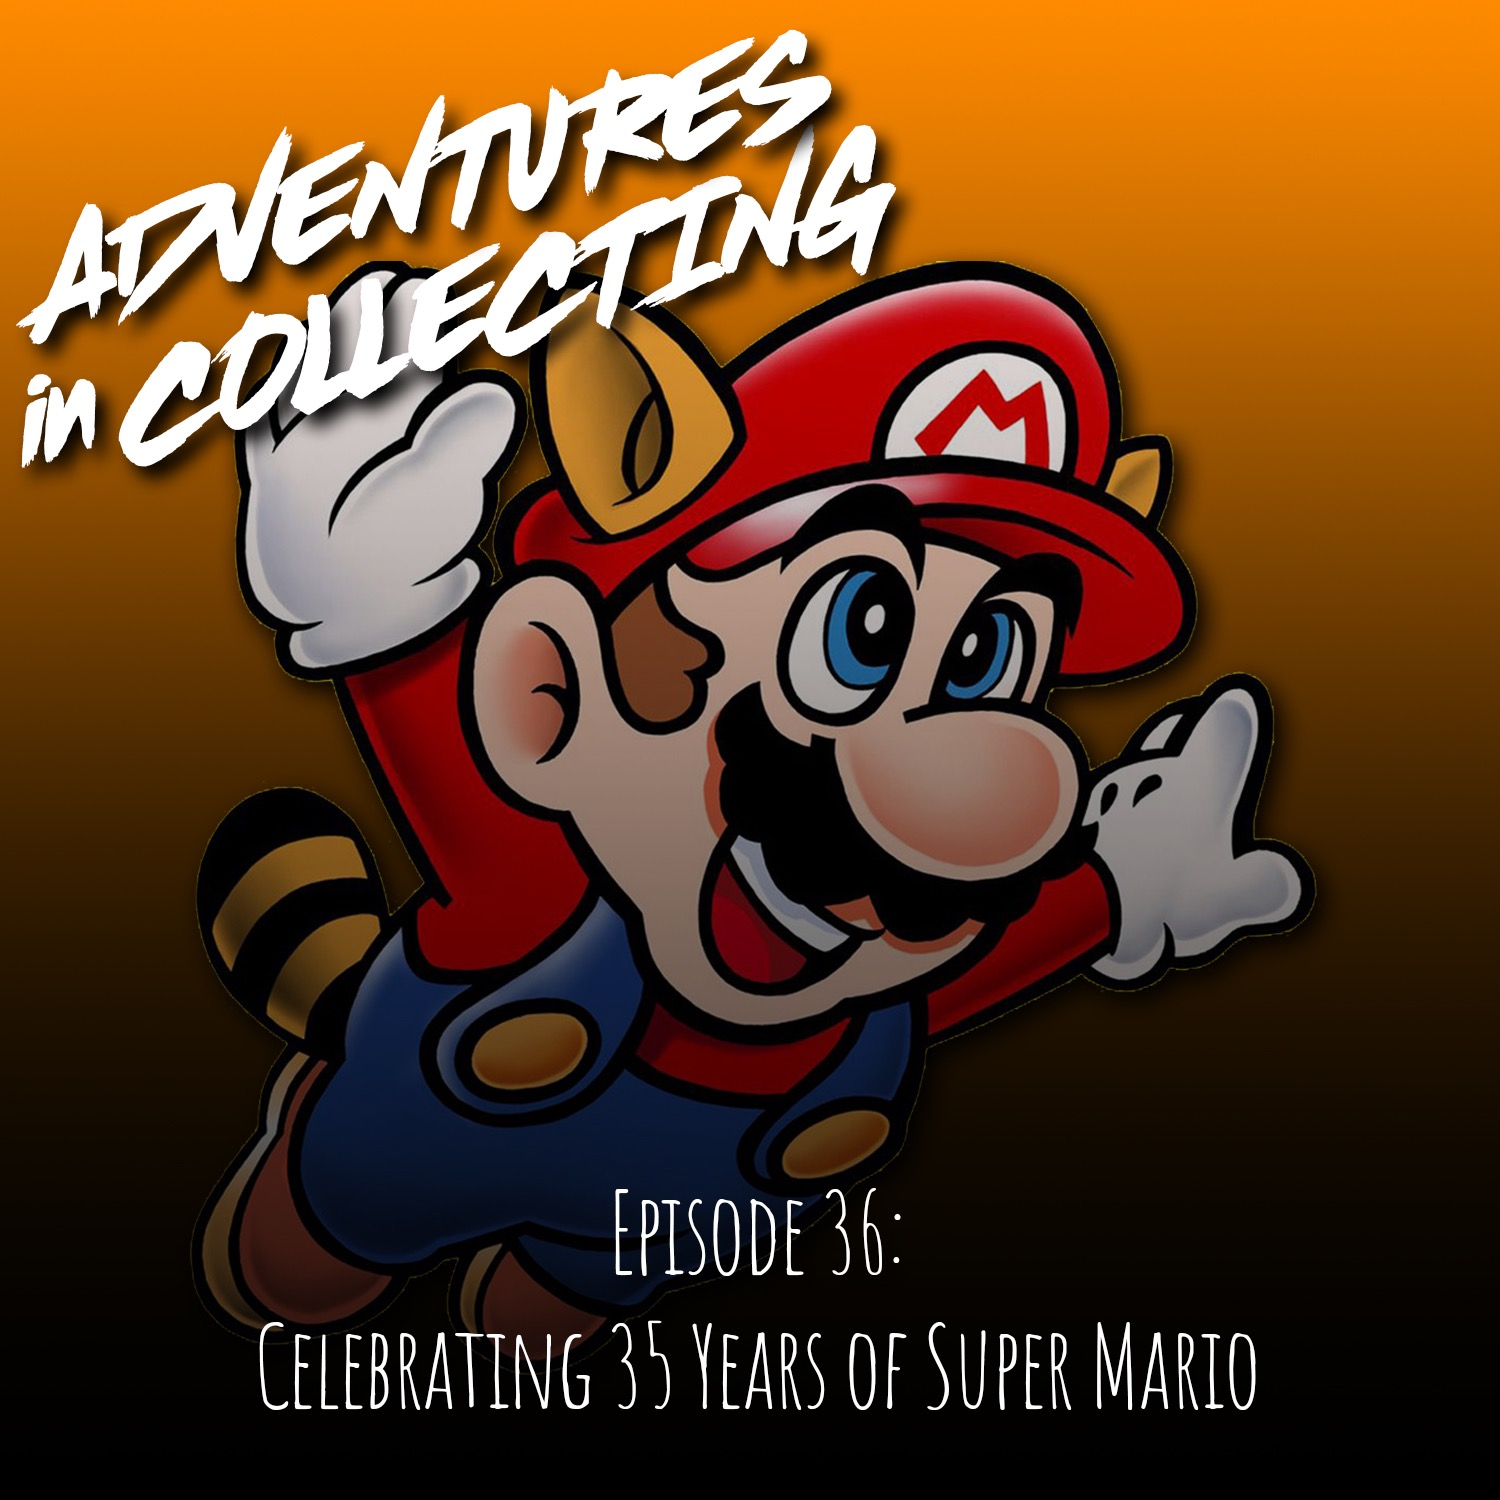 Celebrating 35 Years of Super Mario – Adventures in Collecting